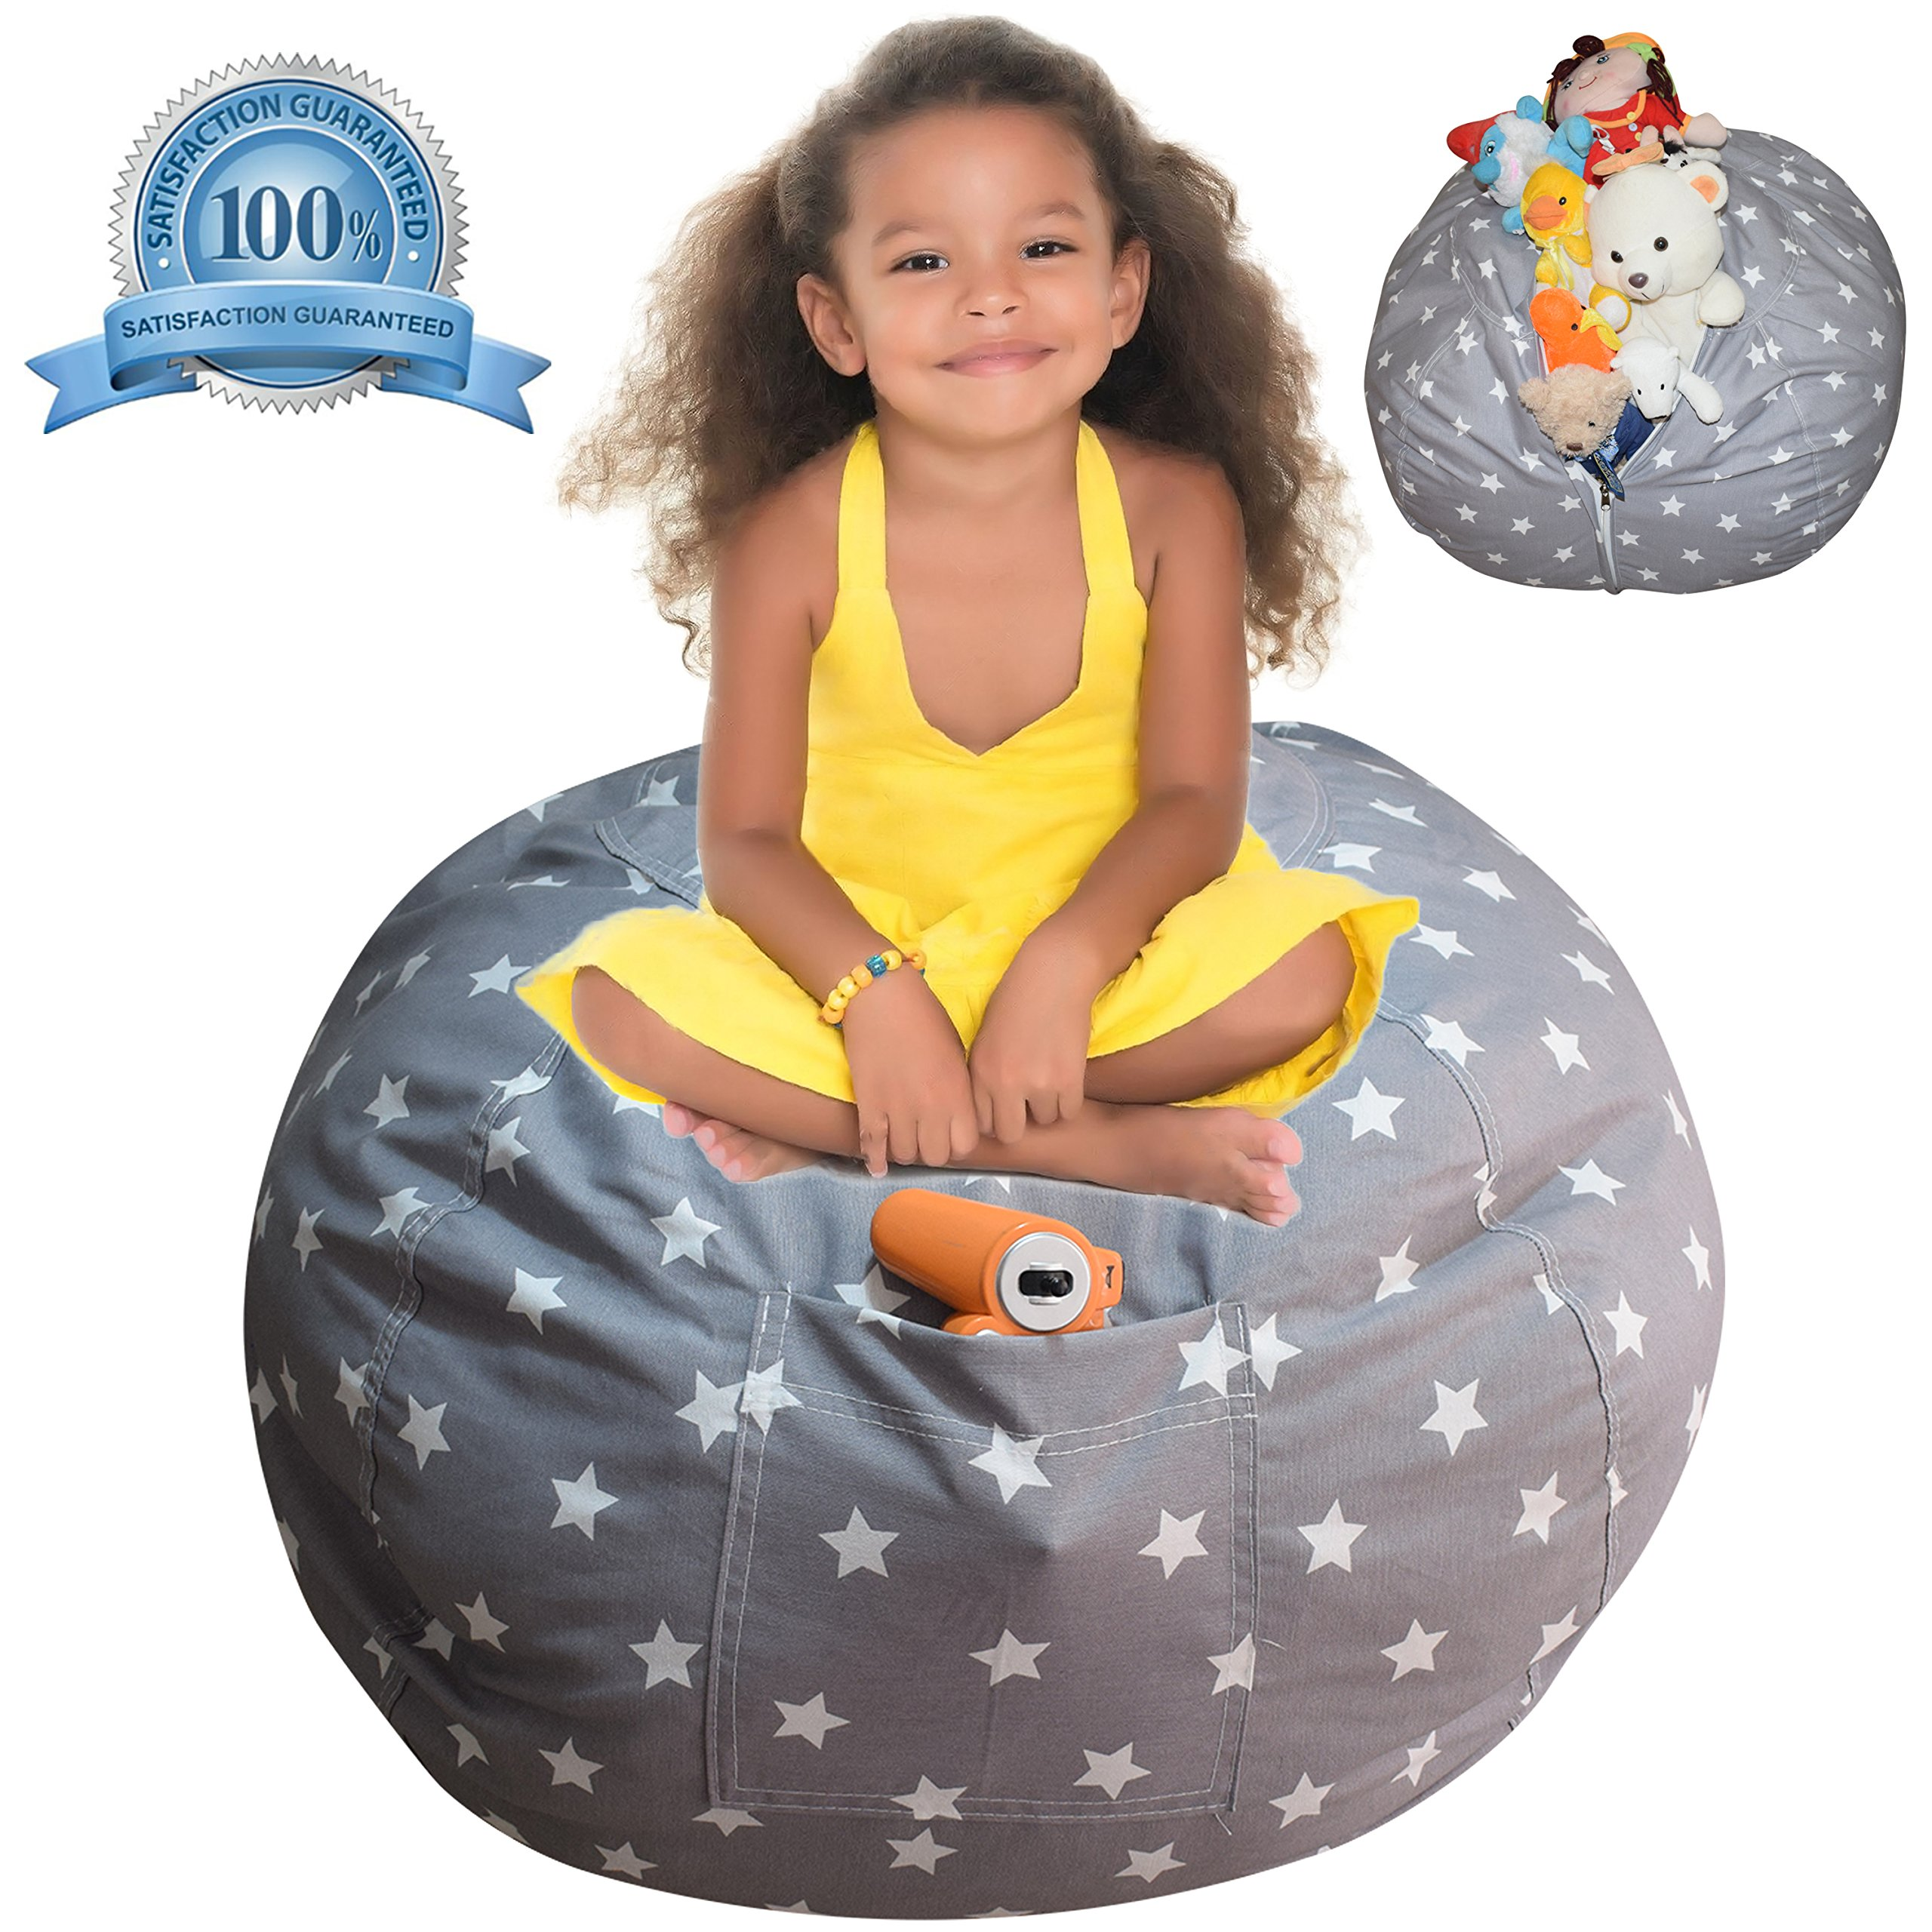 Extra Large Stuffed Animal Storage Bean Bag Cover   Europe Made & Lab Tested Fabric   The Ultimate Storage Solution To Clean Up & Organize Kid's Room   Free E-Book (Unisex Grey) by DaMeru